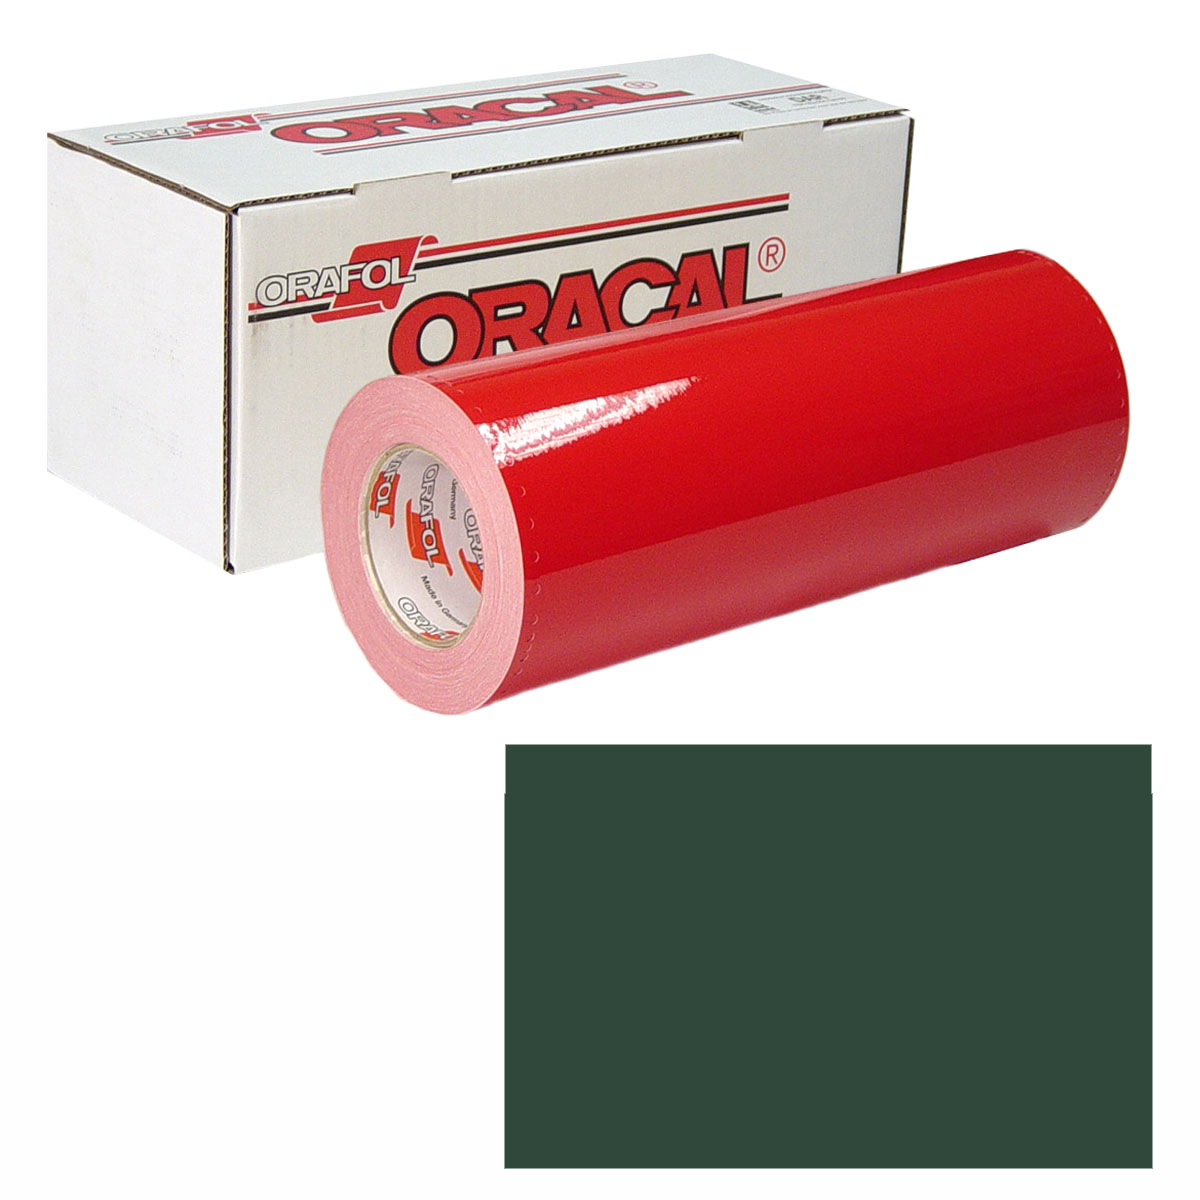 ORACAL 951M Unp 24in X 10yd 677 Fir Green